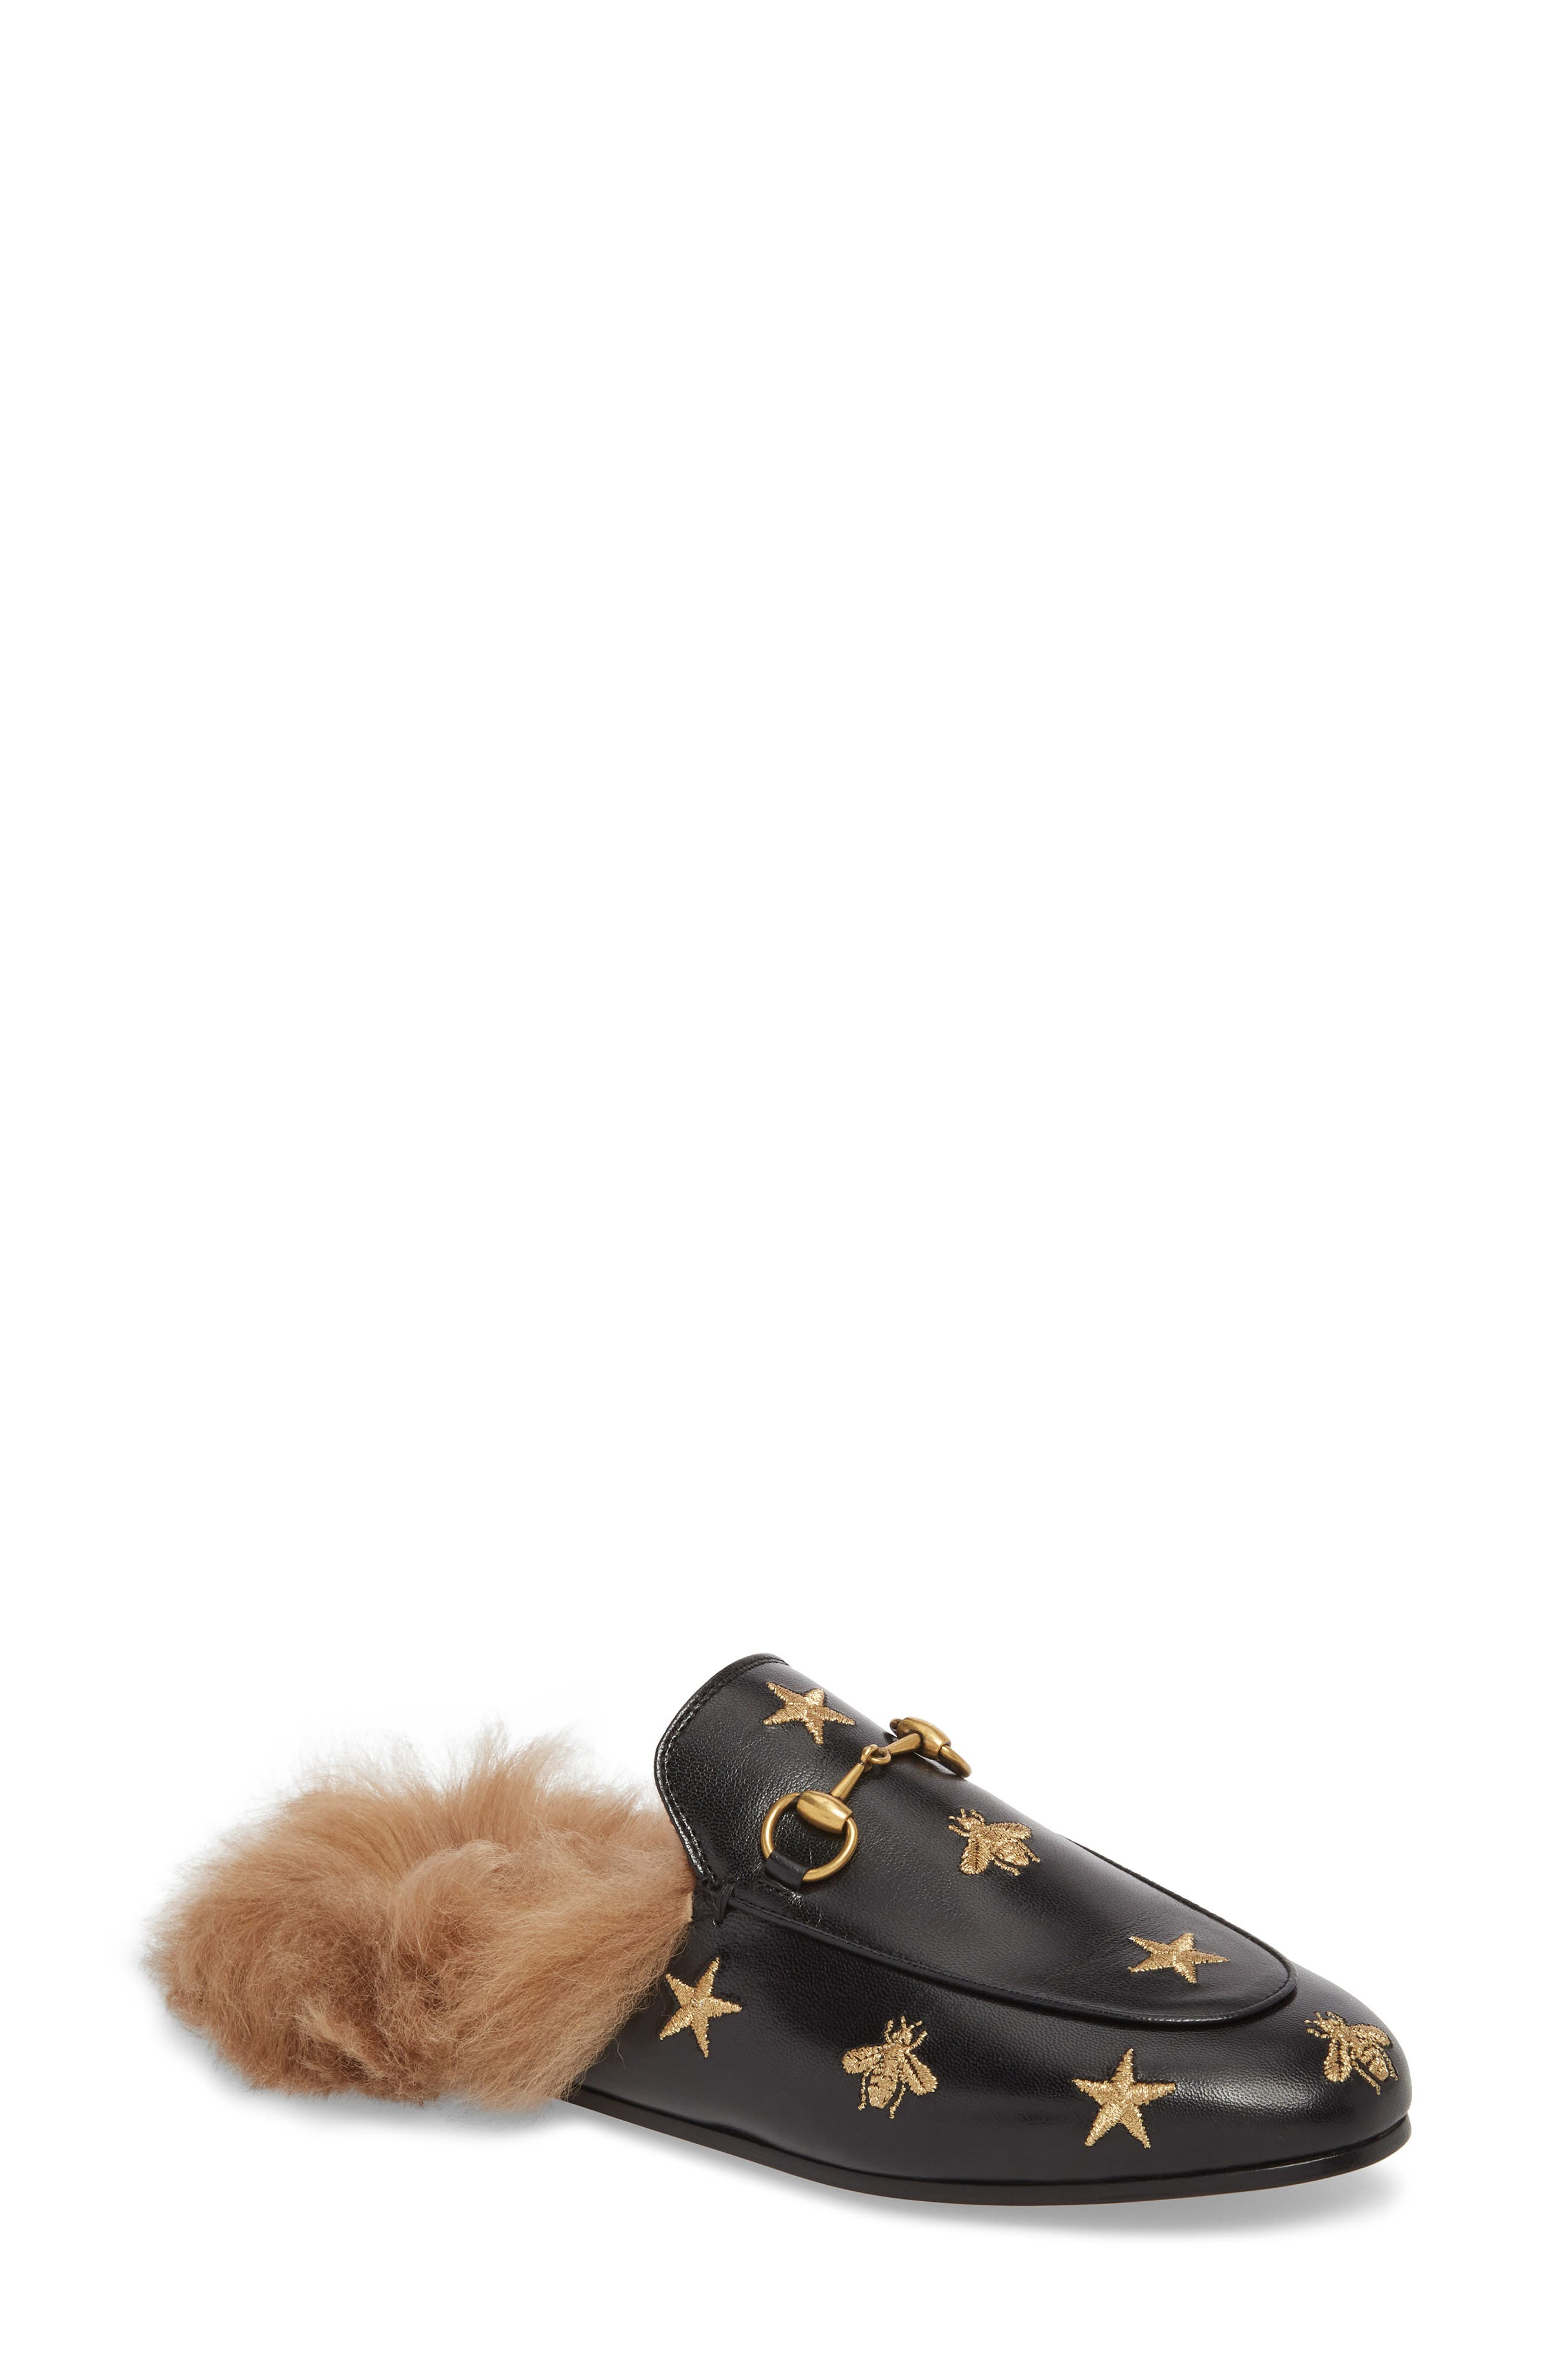 Gucci Princetown Genuine Shearling Bee Loafer Mule - Black